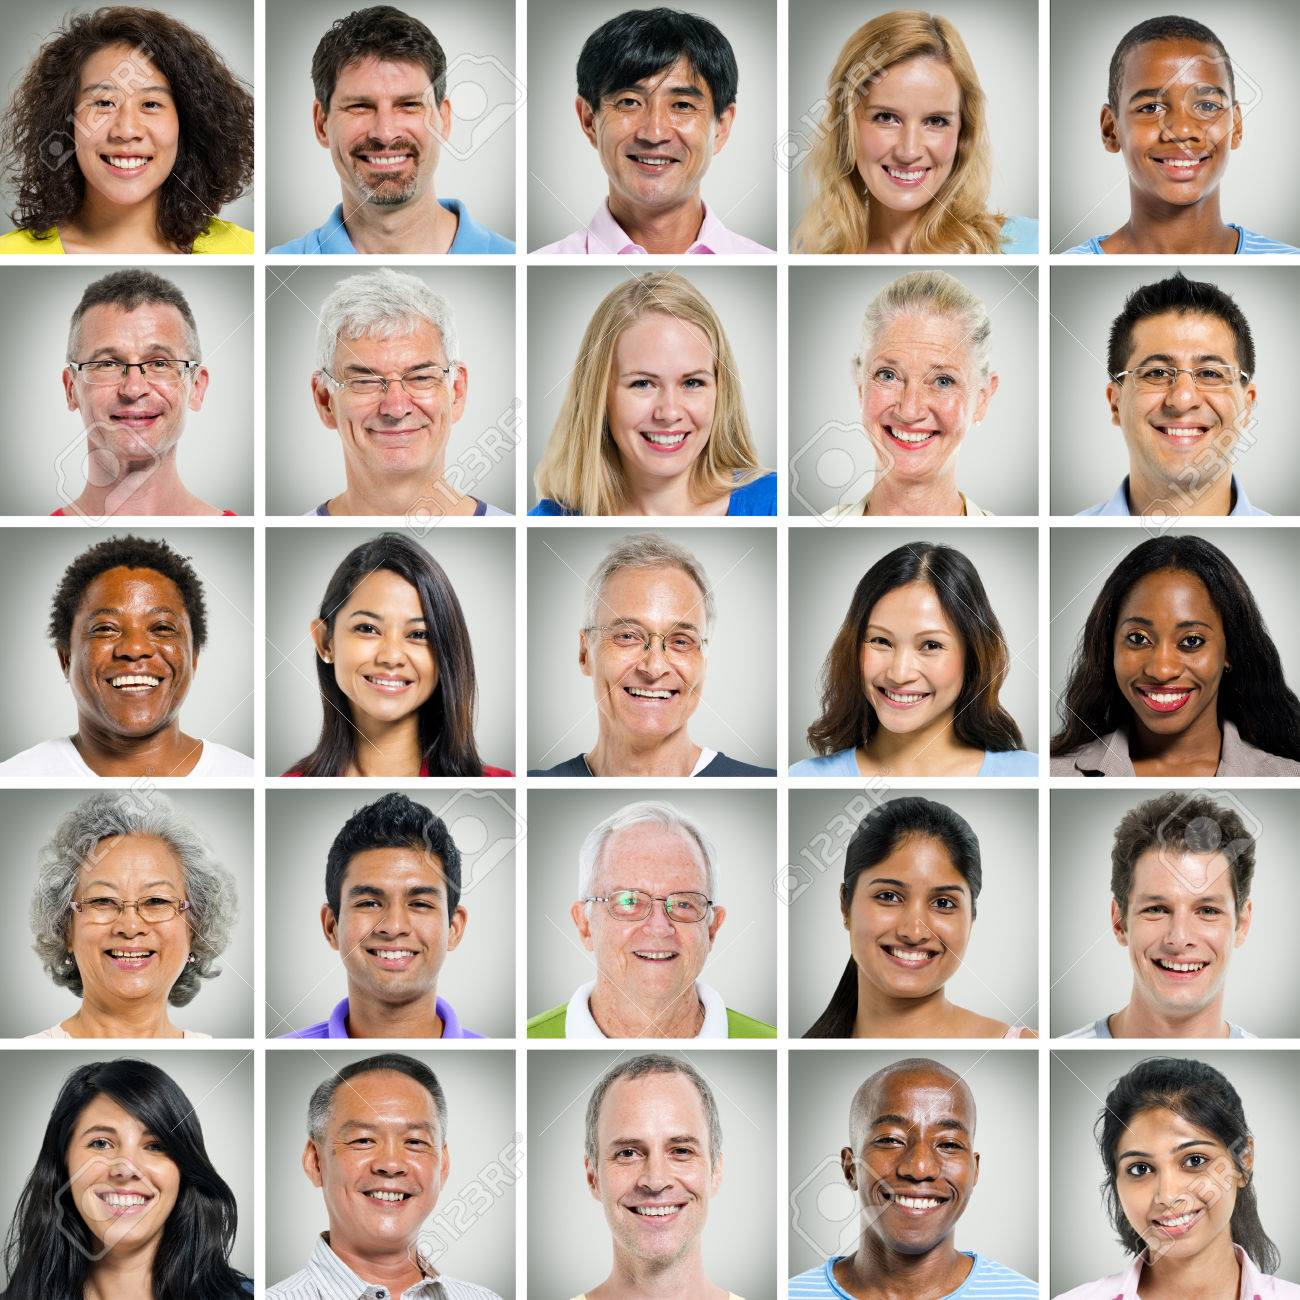 5x5 grid of close ups of smiling people - 34537146